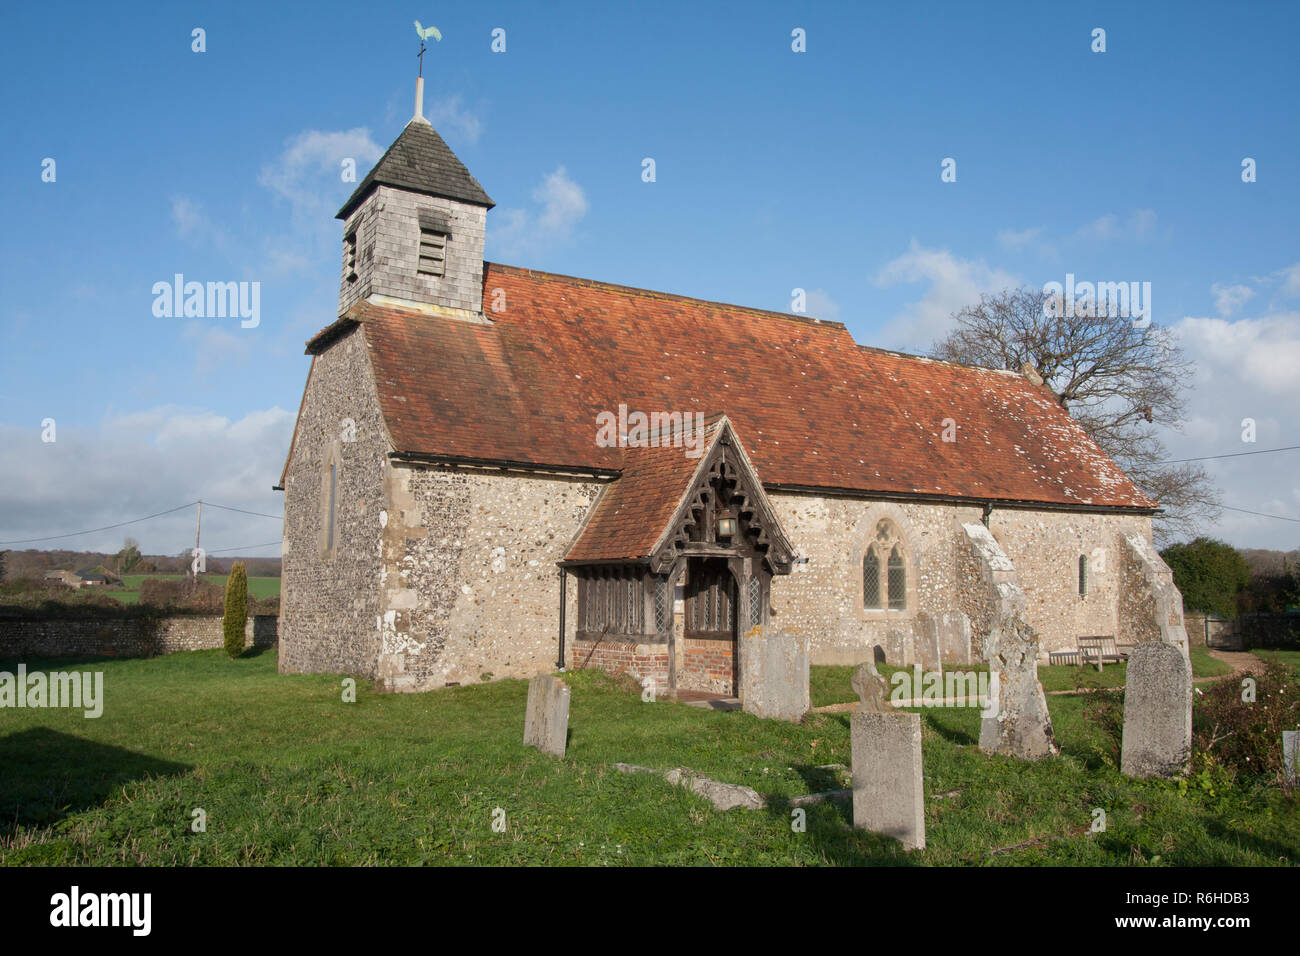 12th century St Mary's church, Binsted, West Sussex, England. Binsted is an ancient village steeped in folklore Stock Photo